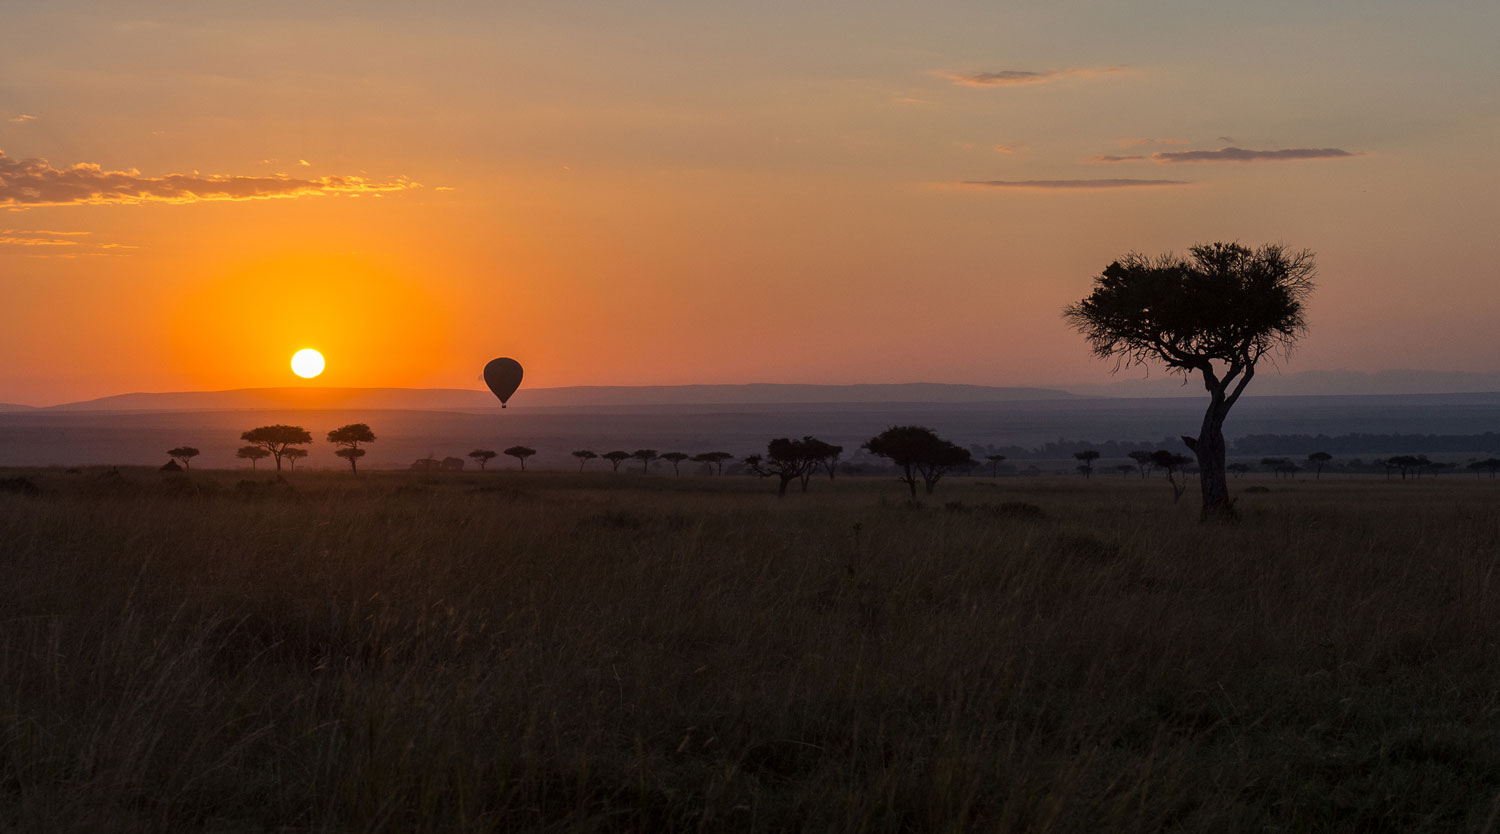 Maasai Mara landscape during sunrise with hot air balloon in the distance